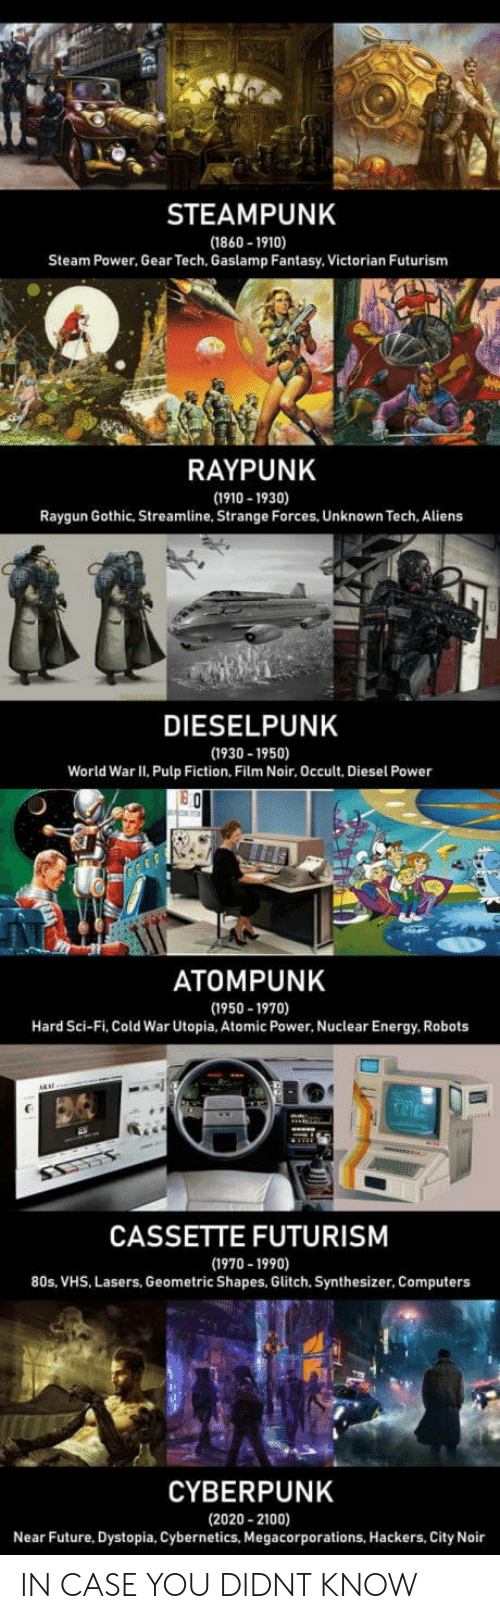 80s, Computers, and Energy: STEAMPUNK  (1860-1910)  Steam Power, Gear Tech. Gaslamp Fantasy. Victorian Futurism  RAYPUNK  (1910-1930)  Raygun Gothic, Streamline, Strange Forces, Unknown Tech. Aliens  DIESELPUNK  (1930 -1950)  World War II, Pulp Fiction, Film Noir, Occult, Diesel Power  ATOMPUNK  (1950-1970)  Hard Sci-Fi, Cold War Utopia, Atomic Power, Nuclear Energy, Robots  CASSETTE FUTURISM  (1970-1990)  80s, VHS, Lasers, Geometric Shapes, Glitch, Synthesizer, Computers  CYBERPUNK  (2020- 2100)  Near Future, Dystopia, Cybernetics, Megacorporations, Hackers, City Noir IN CASE YOU DIDNT KNOW